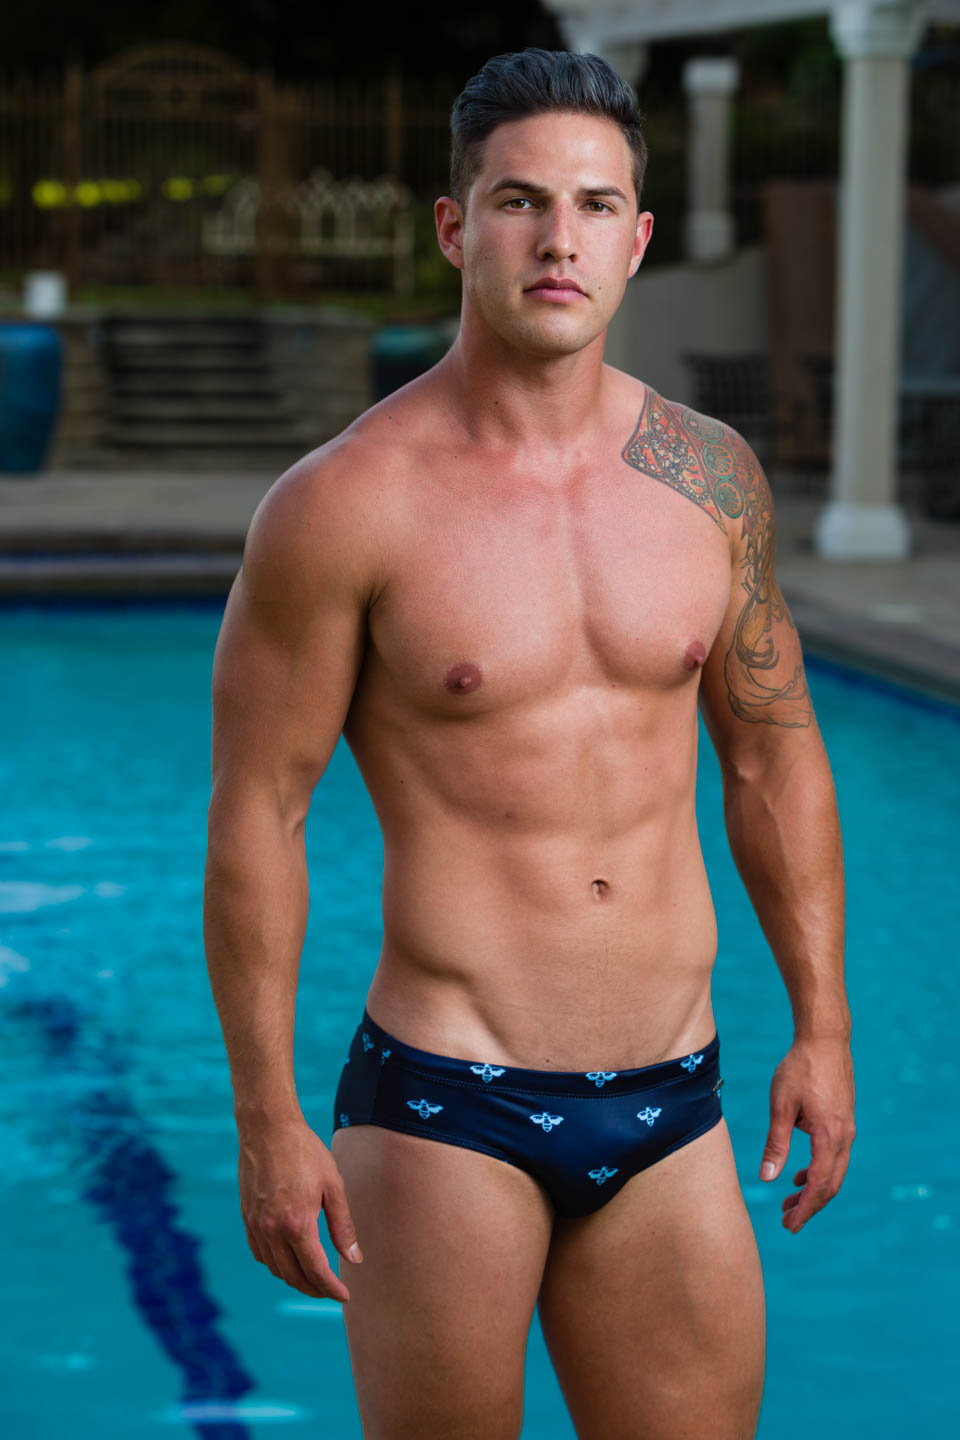 Luke models Aronik Mission Call swimwear